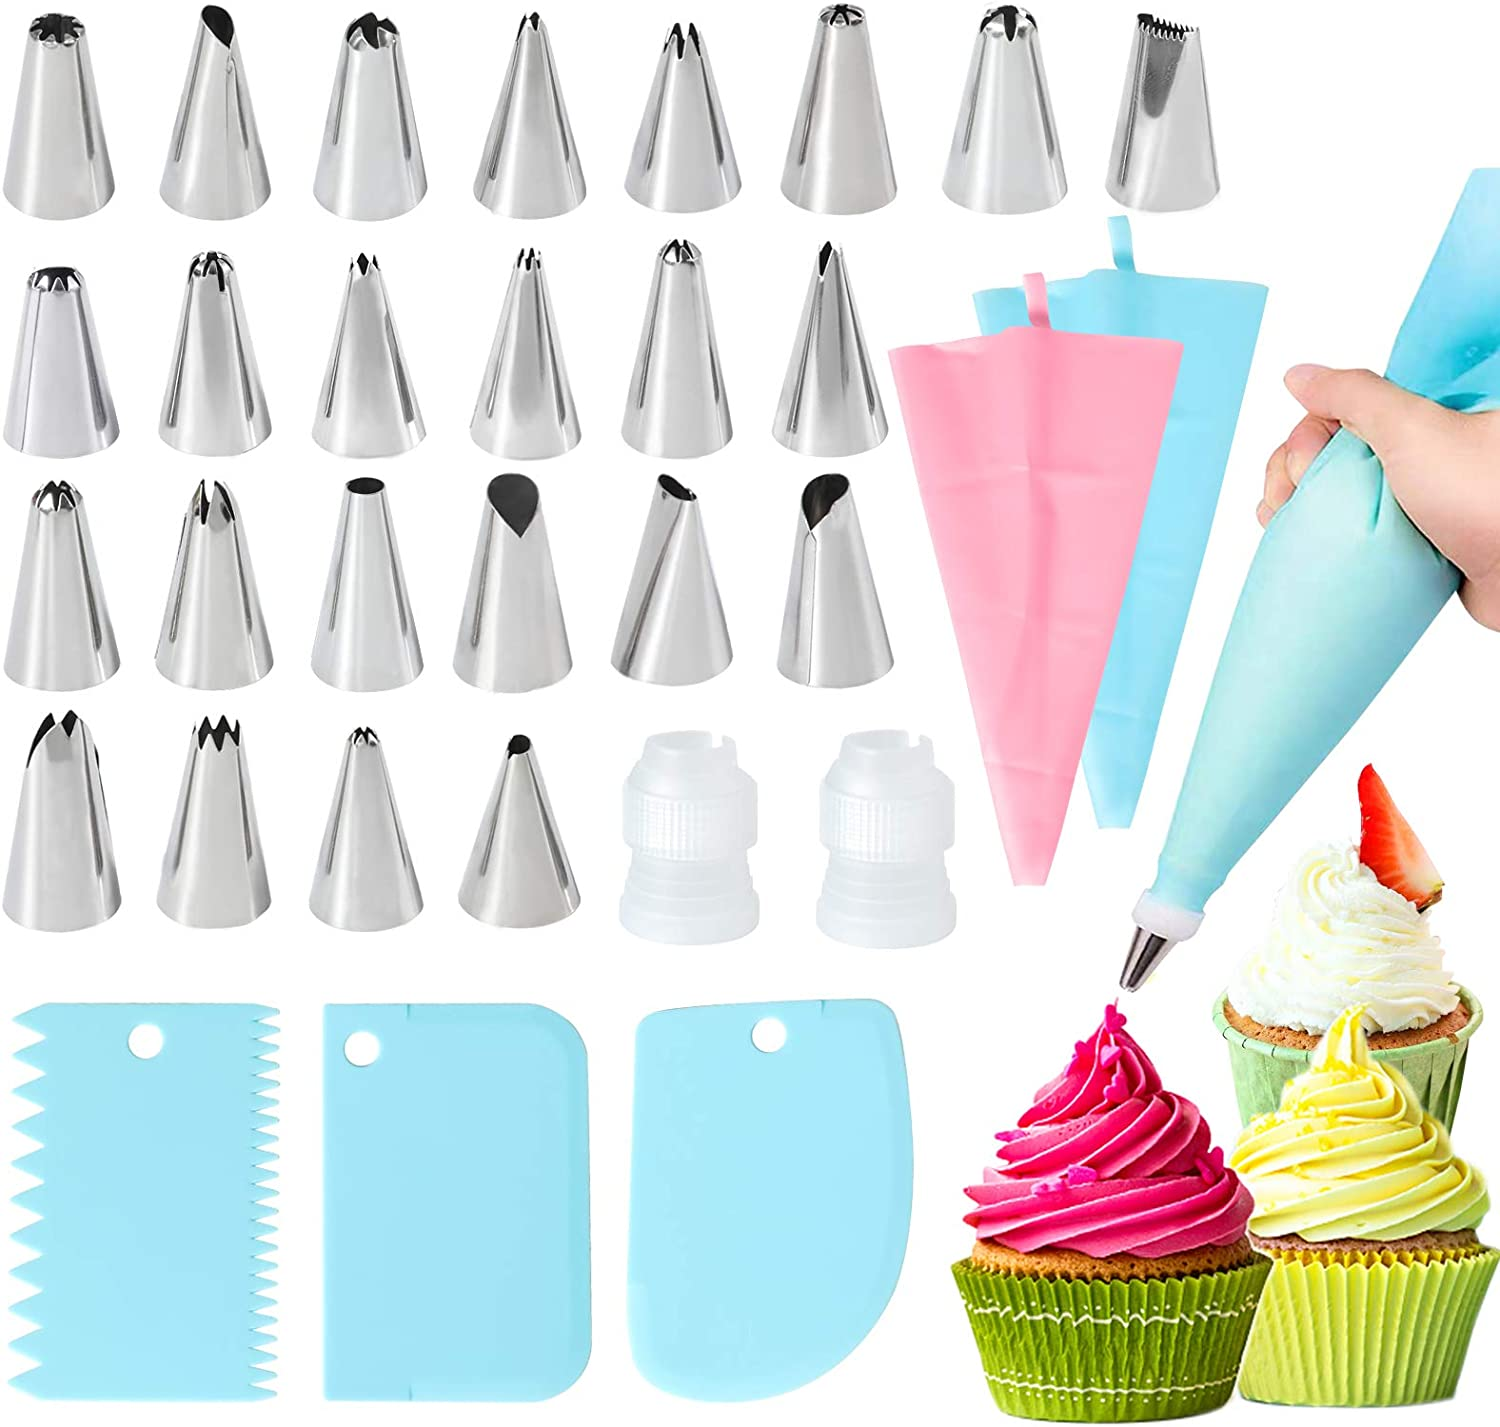 pastry bags-Flower Frosting Tips-Large Cupcake Decorating 63 Cake Decorating Tools sets-Icing Piping Tips YEHUA Piping bags and tips Cake Decorating Supplies Multi-functional Baking Supplies Set